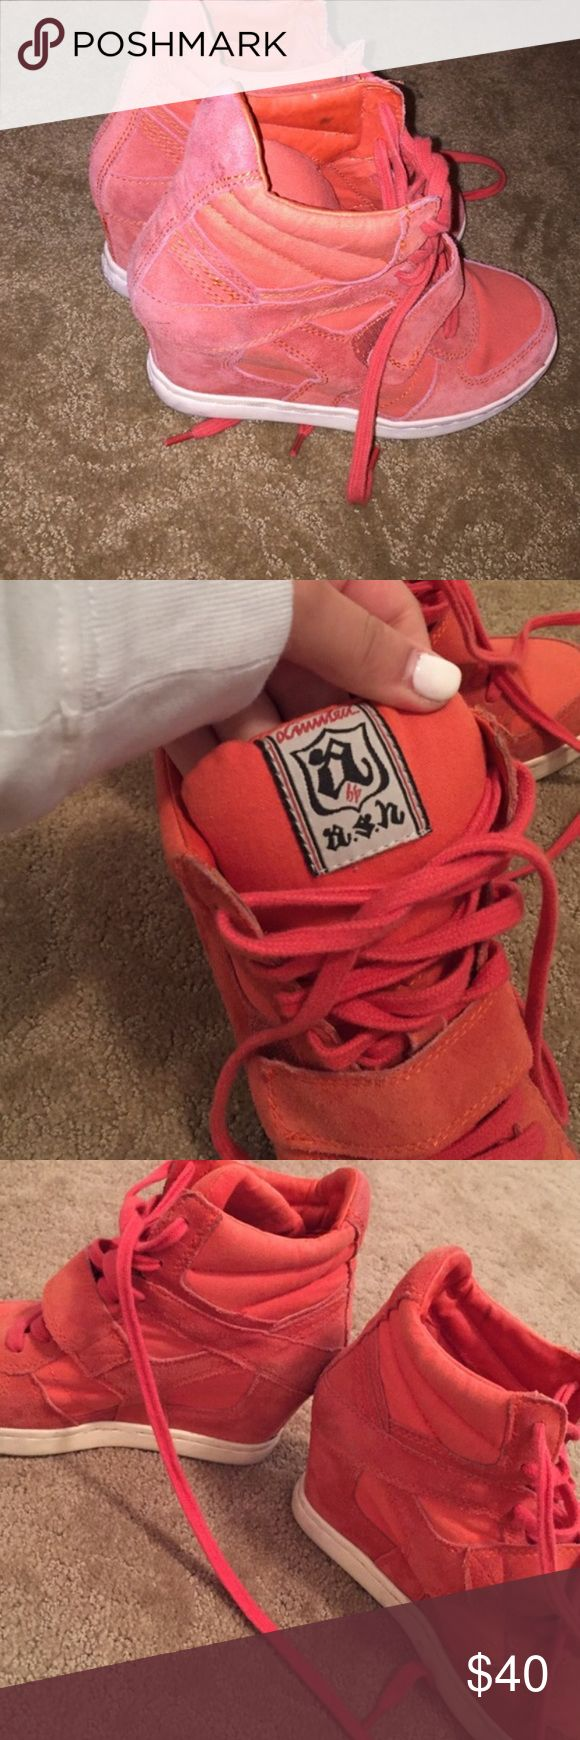 ASH orange sneakers Worn one time. Comfy Ash Shoes Ankle Boots & Booties